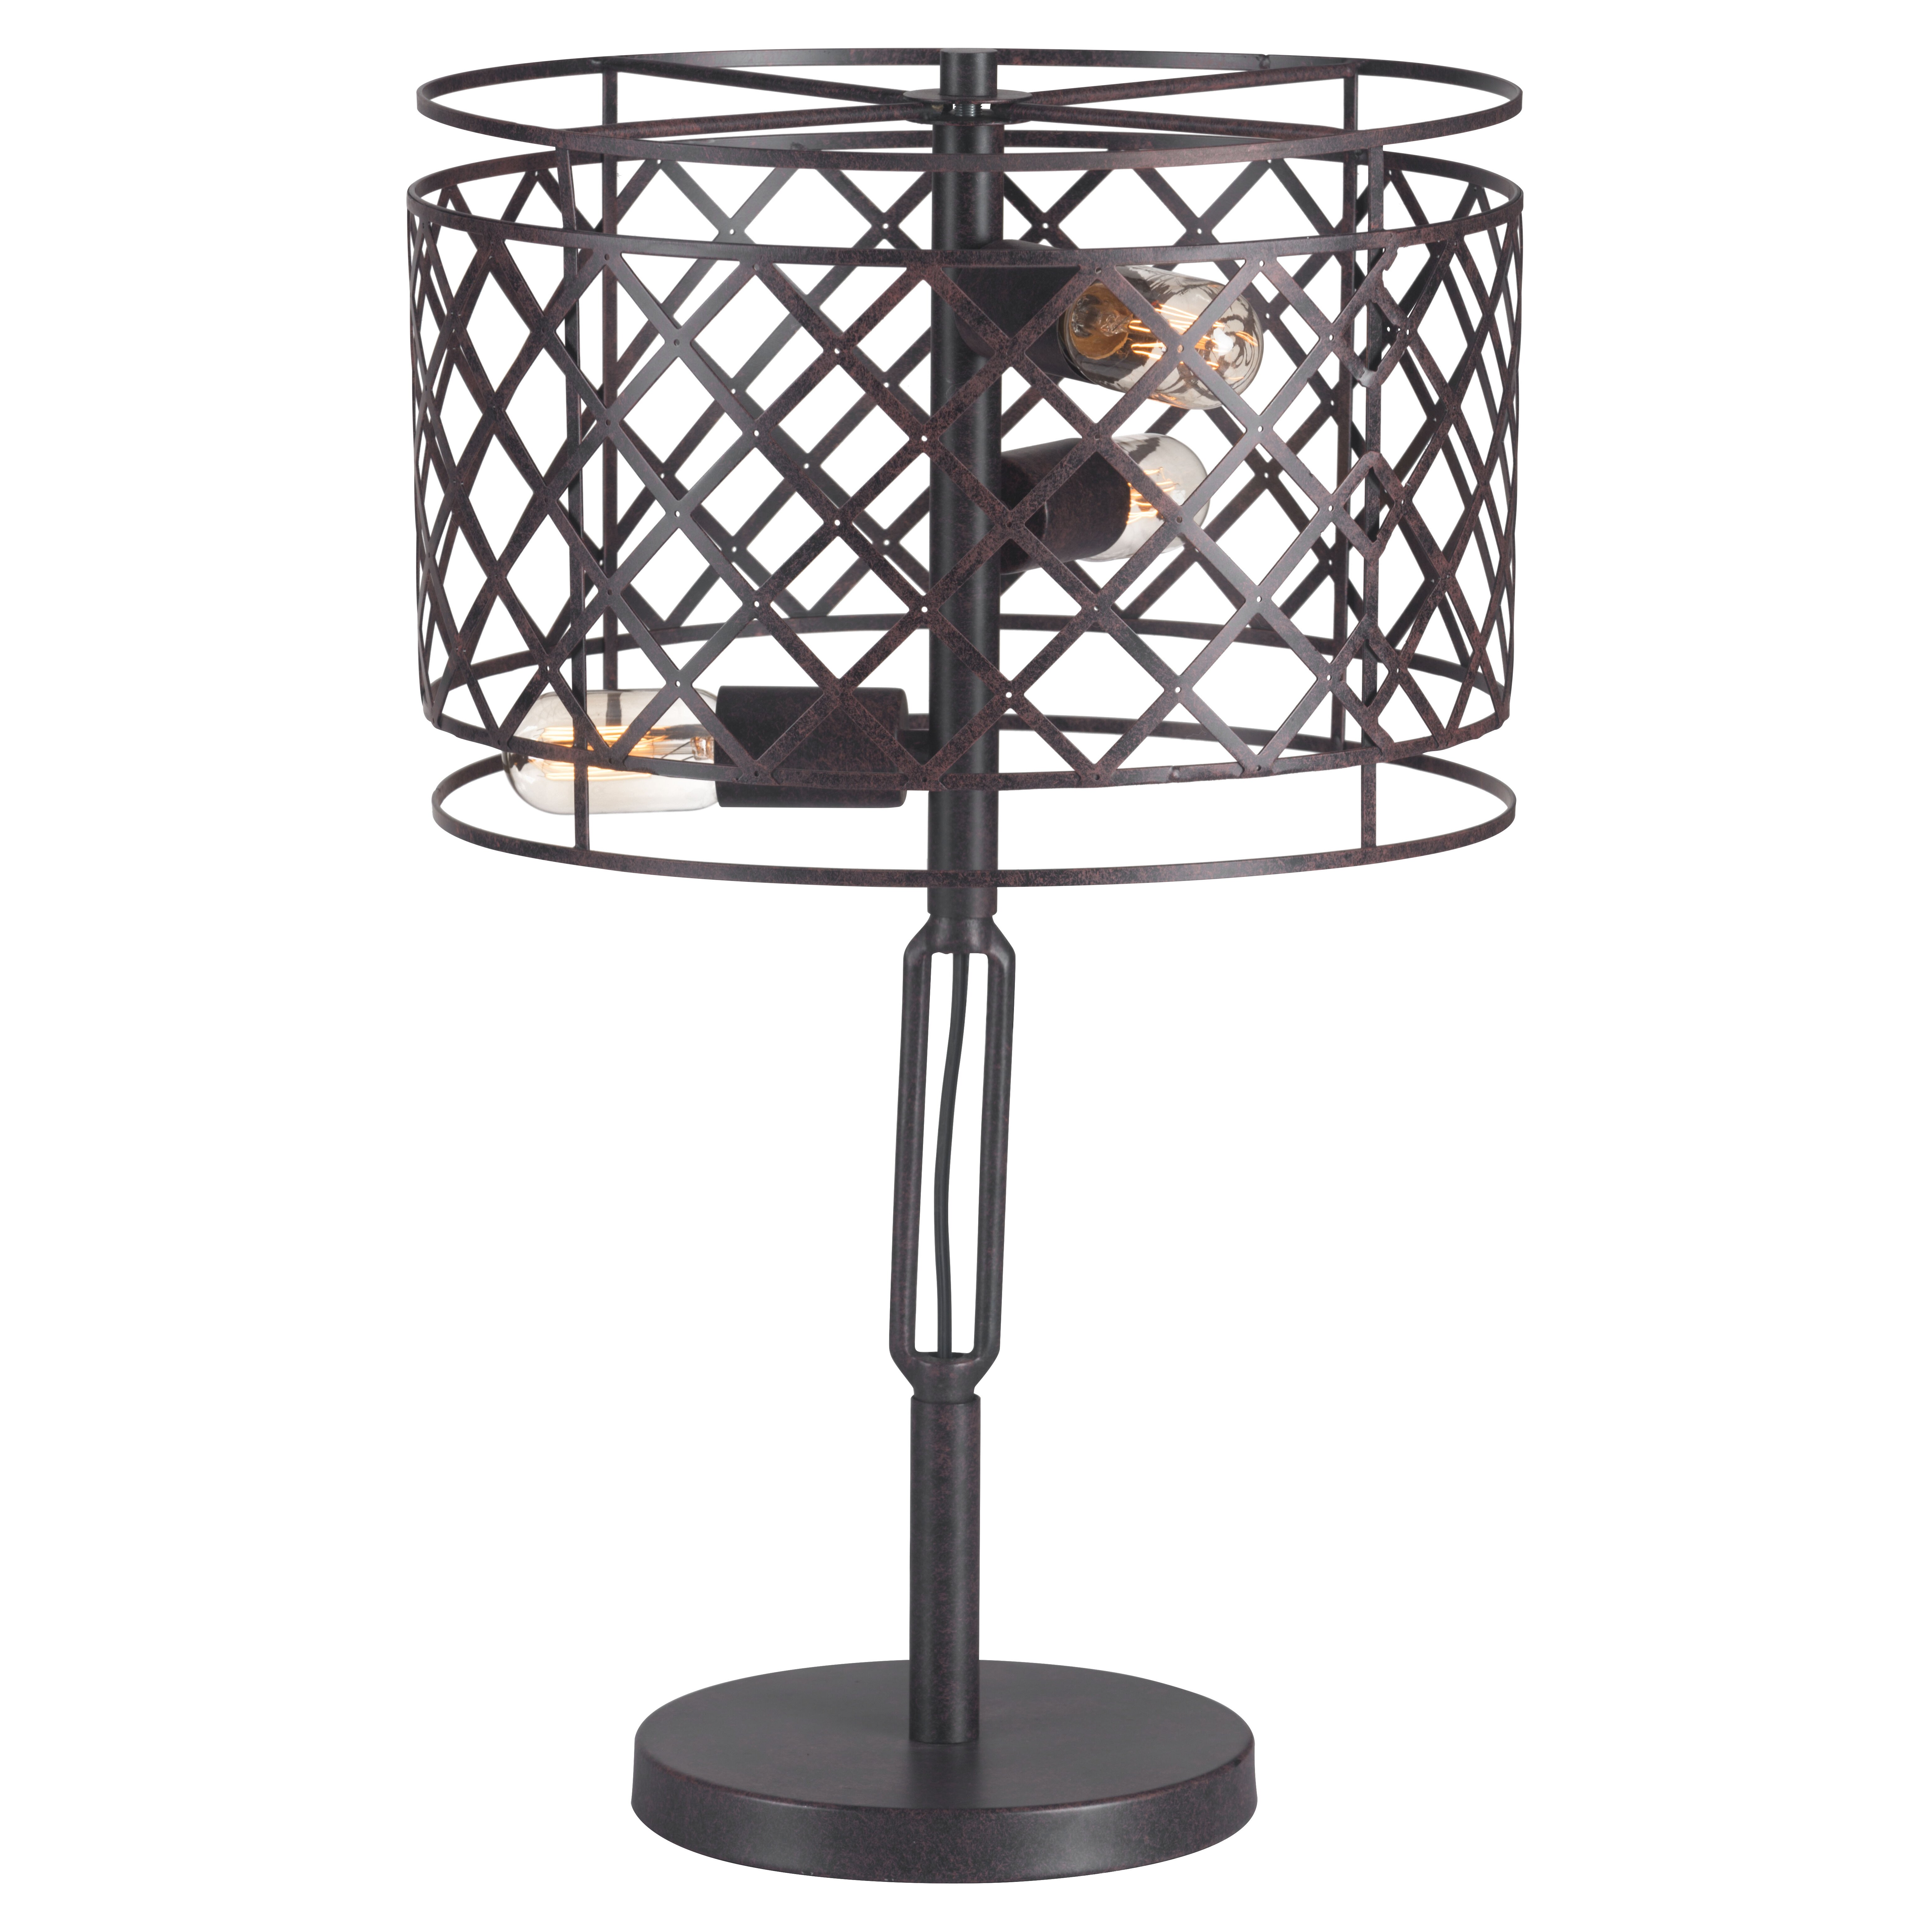 dcor design sprint 24 4 h table lamp with drum shade. Black Bedroom Furniture Sets. Home Design Ideas